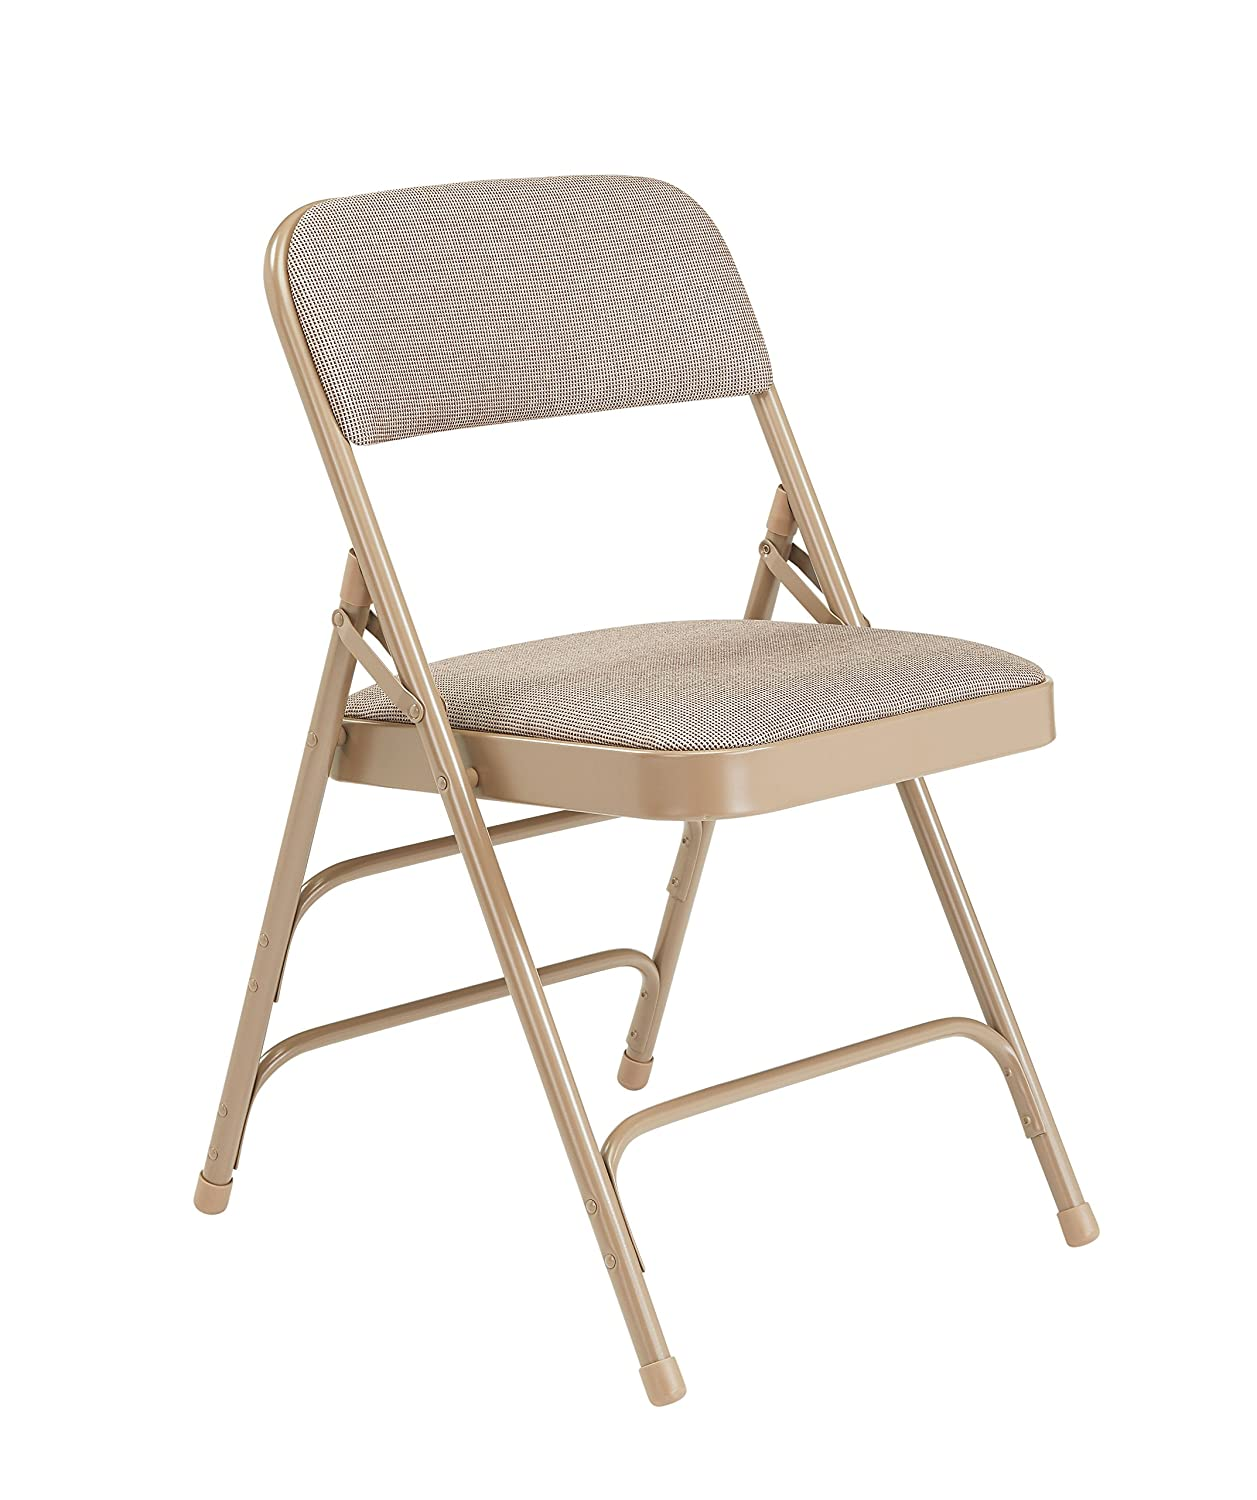 National Public Seating Premium Fabric Triple Brace Folding Chair - 4 Pack